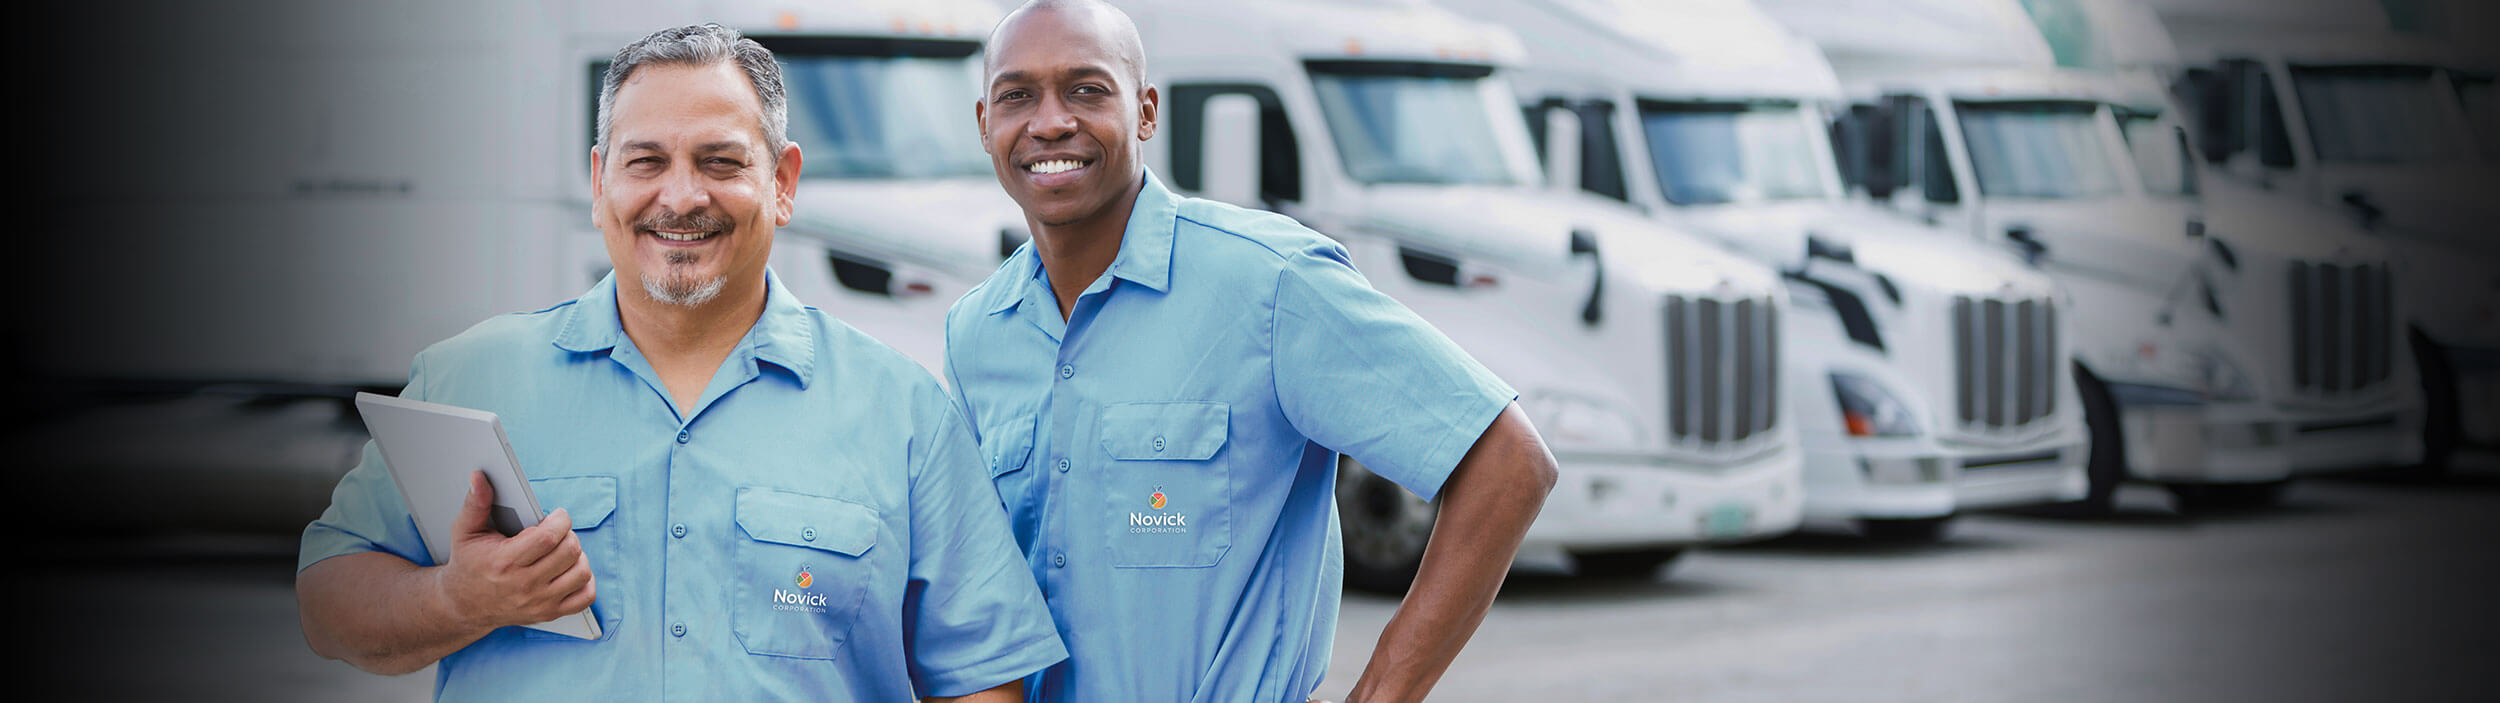 wholesale food distributors in PA - two people standing in front of Novick trucks - Novick Corporation